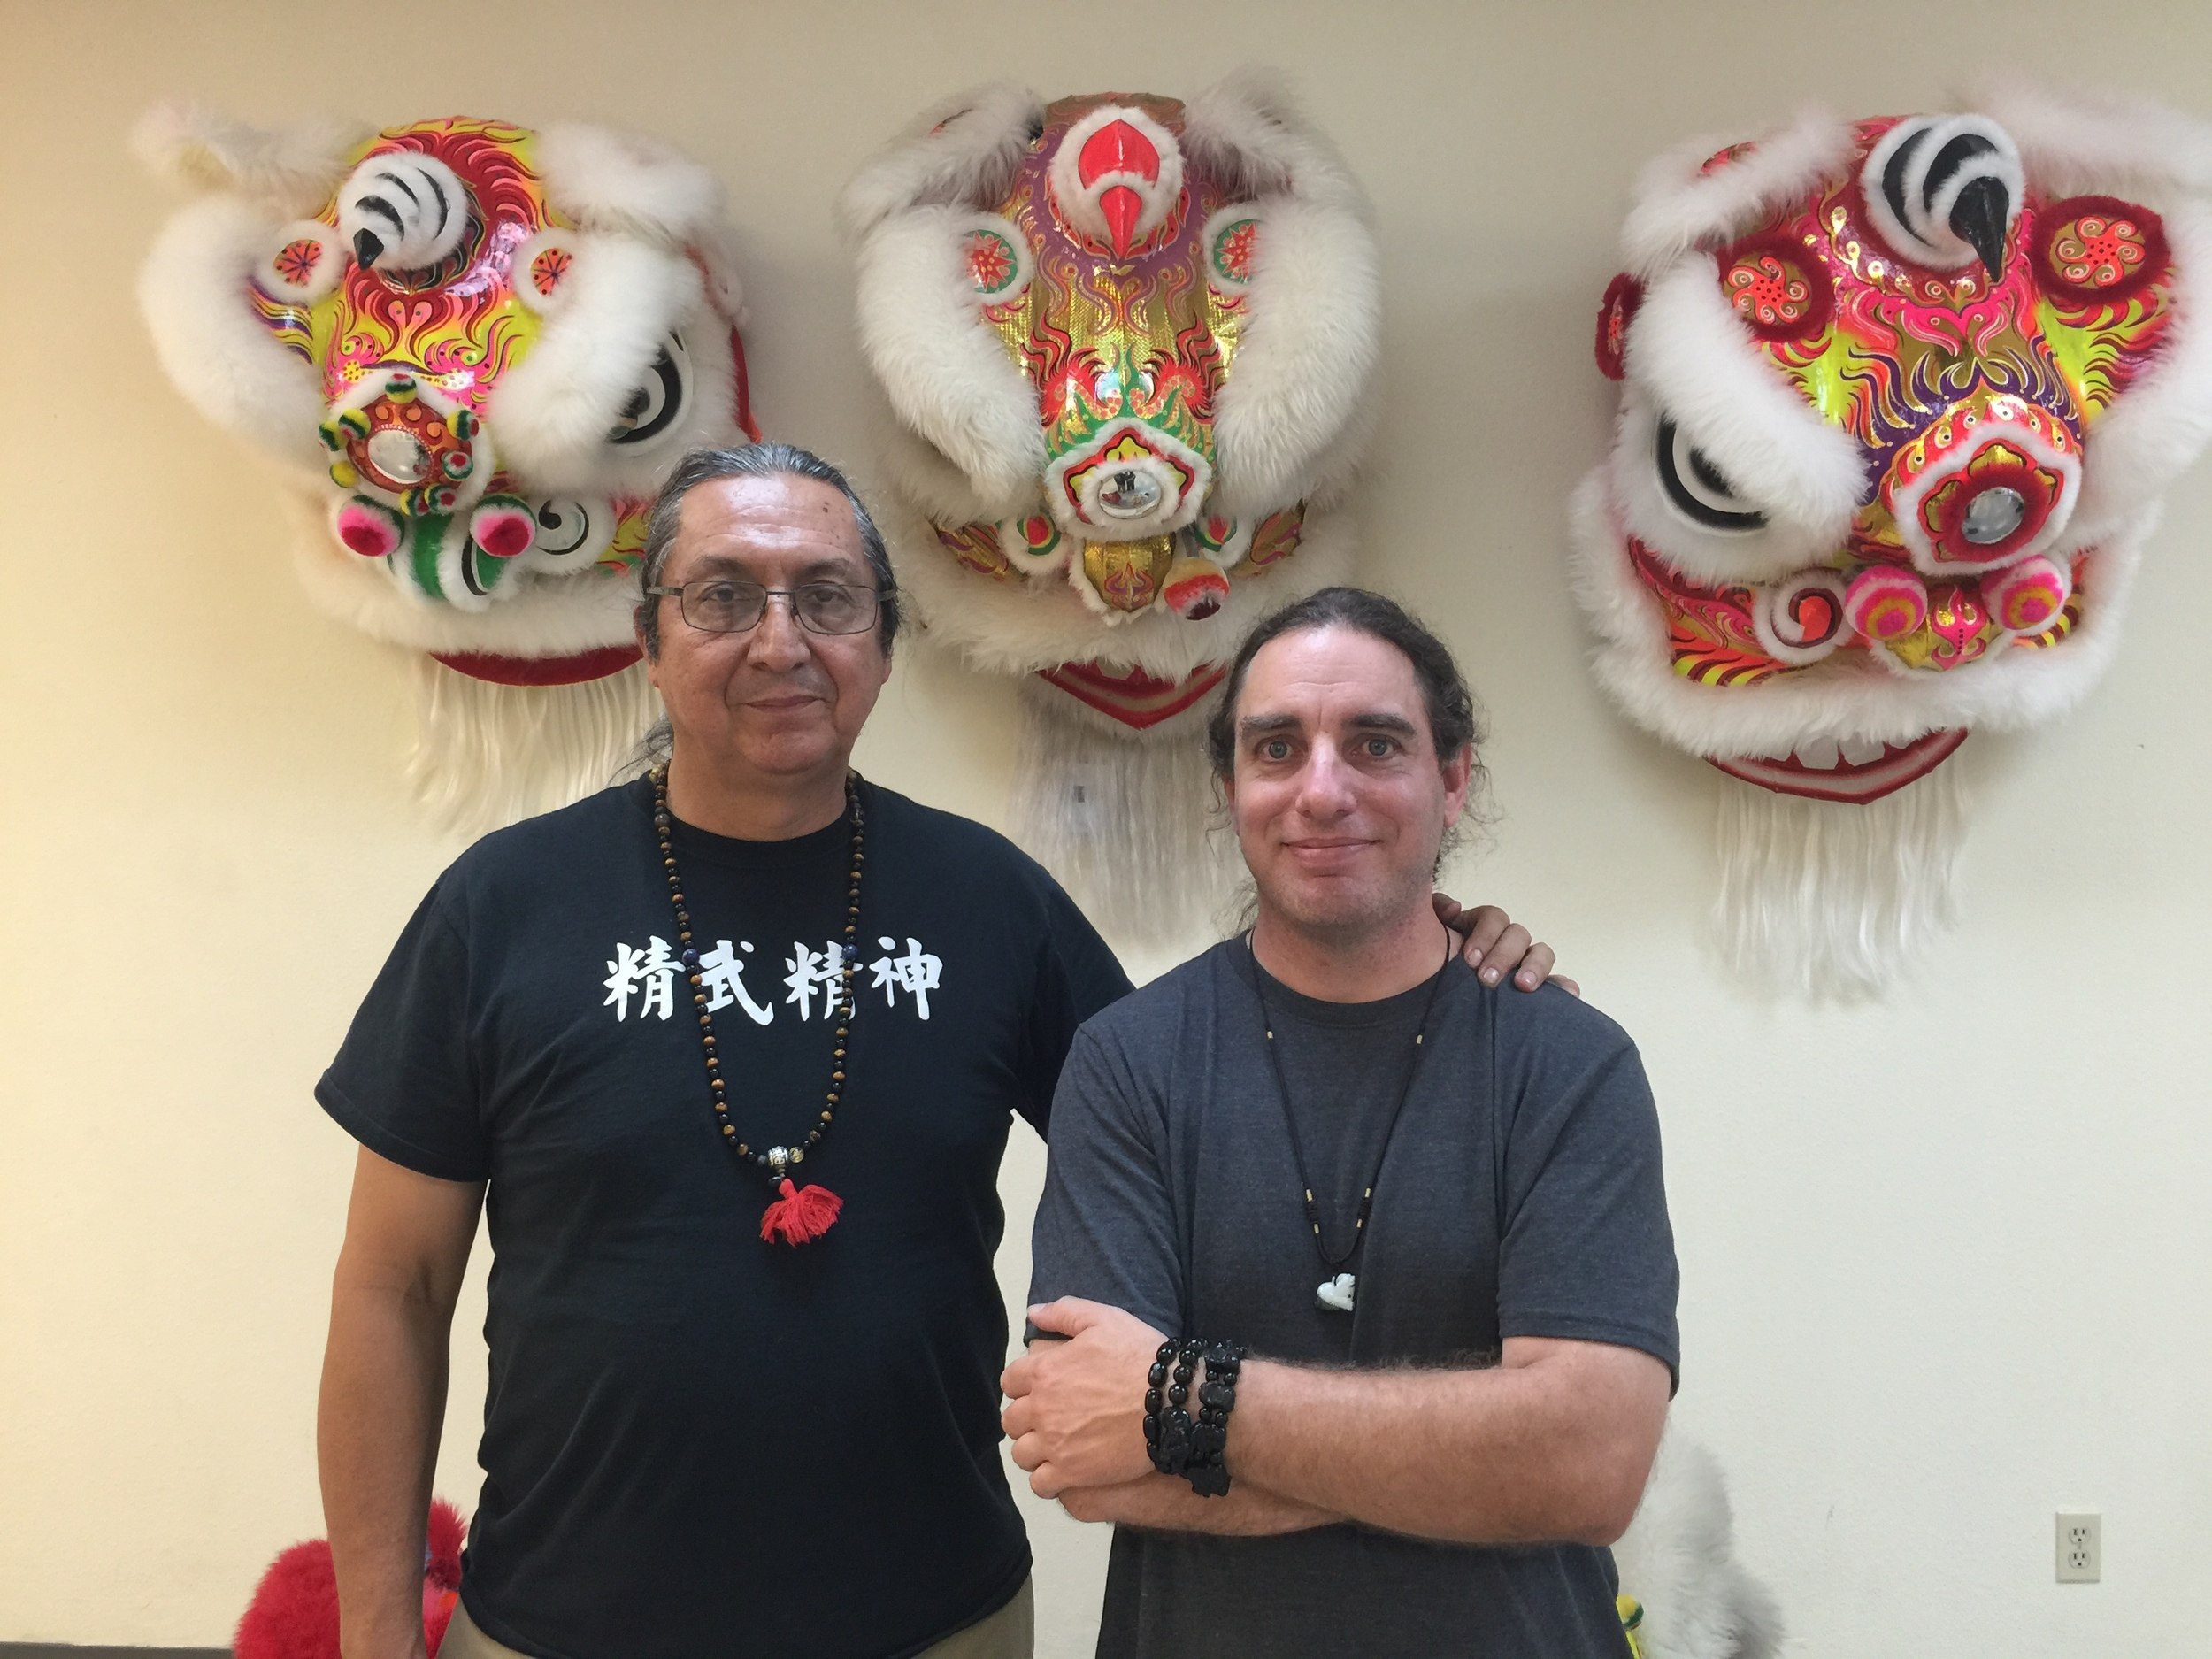 Grand Master Steven Baugh and Sifu Jeremy Hector. Over the past few years with a number of prominent shows offered for lion dance, Sifu Hector wanted to up his game in that area, so he sought out a more traditional approach; thus, he and his students trained with Grand Master Steven Baugh of the Lohan School of Shaolin in Las Vegas. Lion's Pride now brings that traditional training to Southern California for instruction and performance.